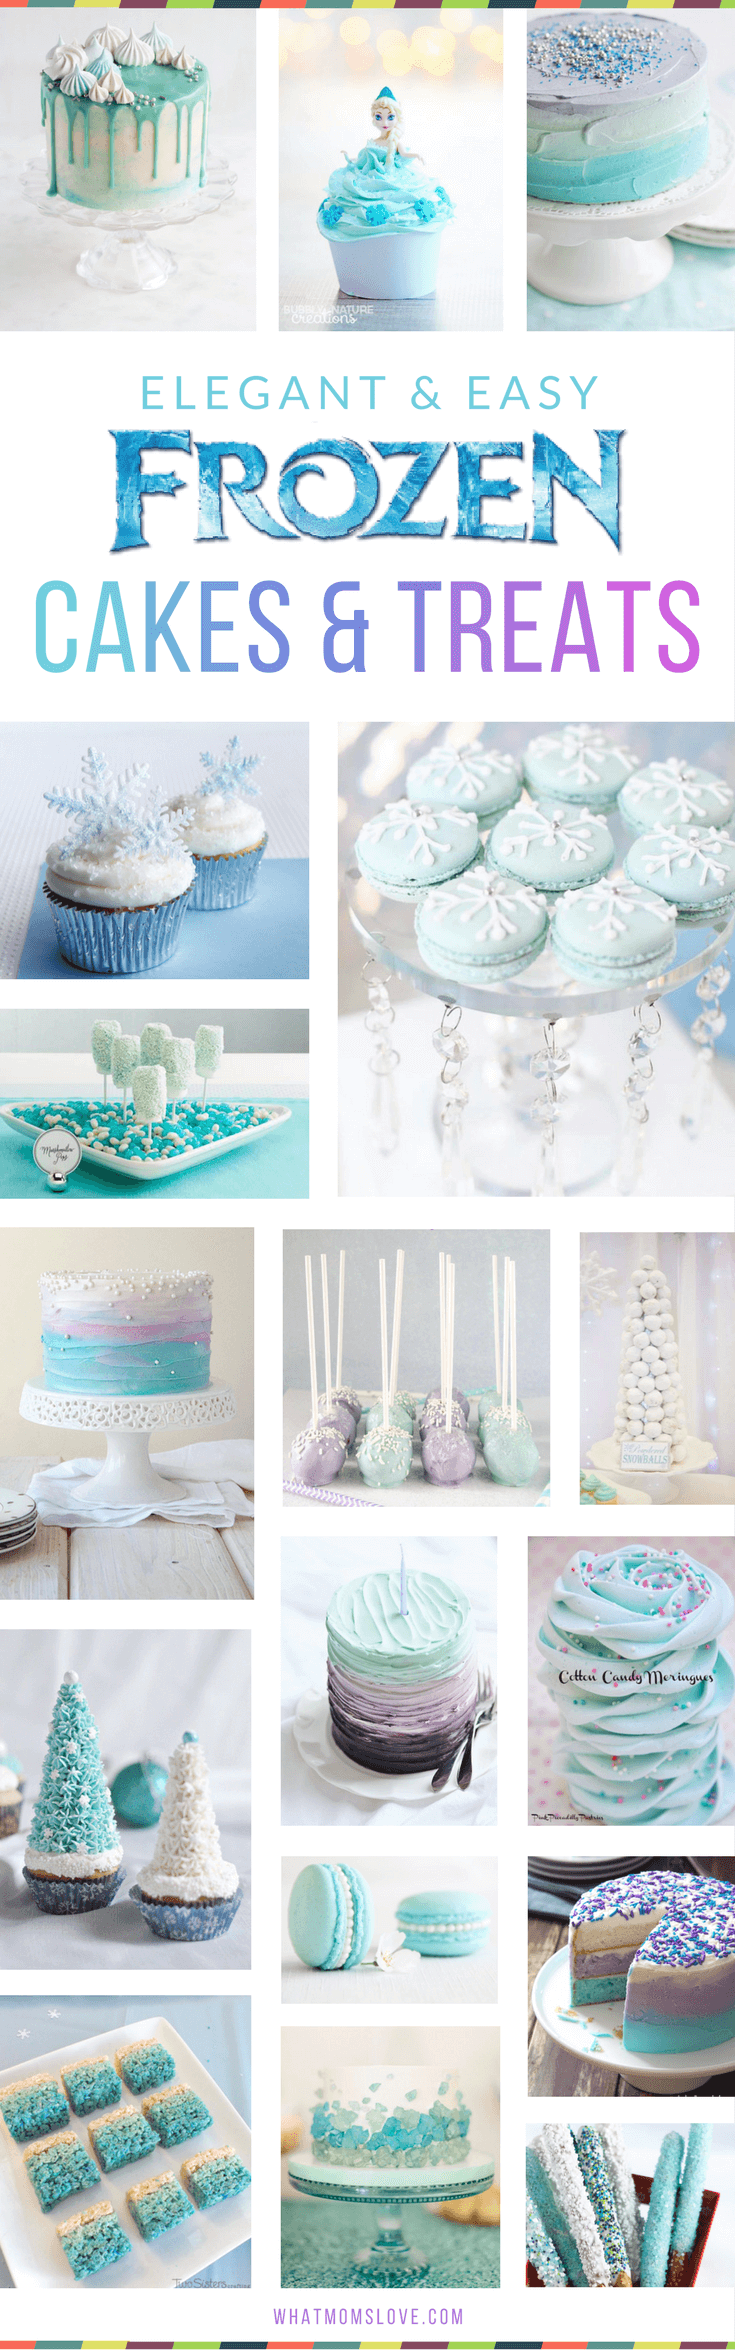 Elegant FrozenInspired Cakes Treats That Would Make Elsa Proud